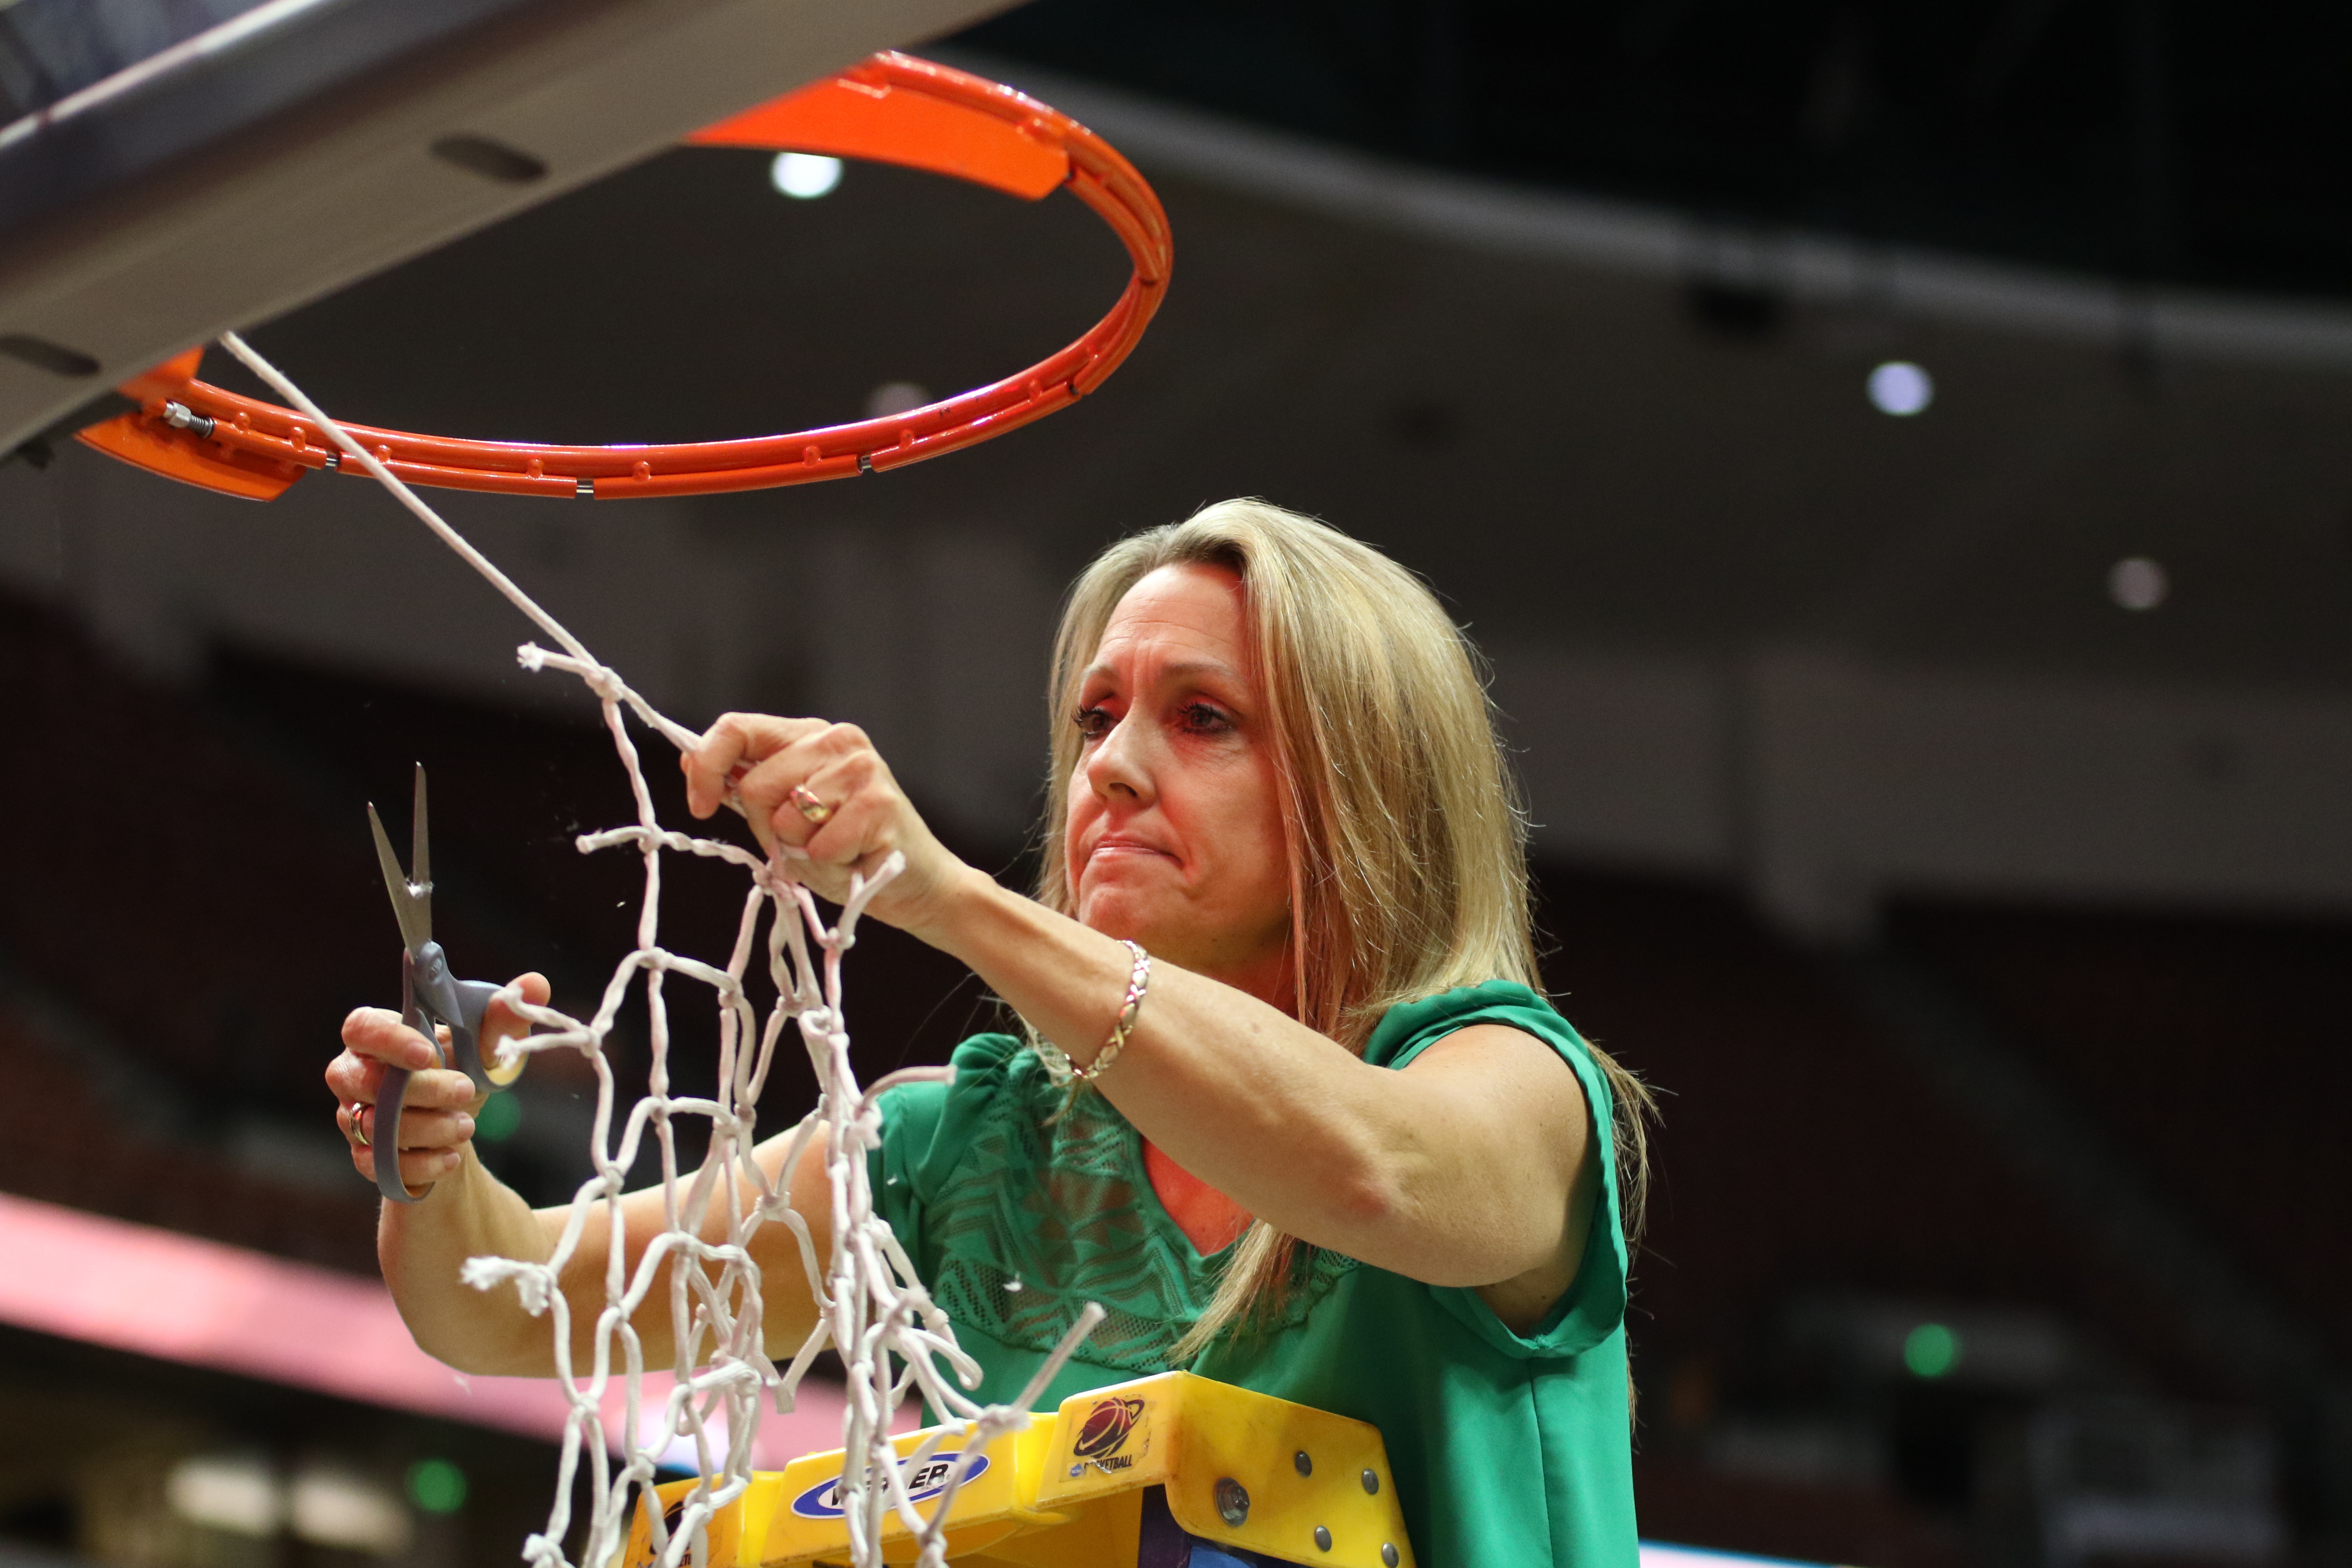 The UH Wahine basketball team faces UC Davis for the championship of the 2016 Big West Tournament at the Honda Center, Anaheim, CA on March 12, 2016. Photo: Brandon Flores.